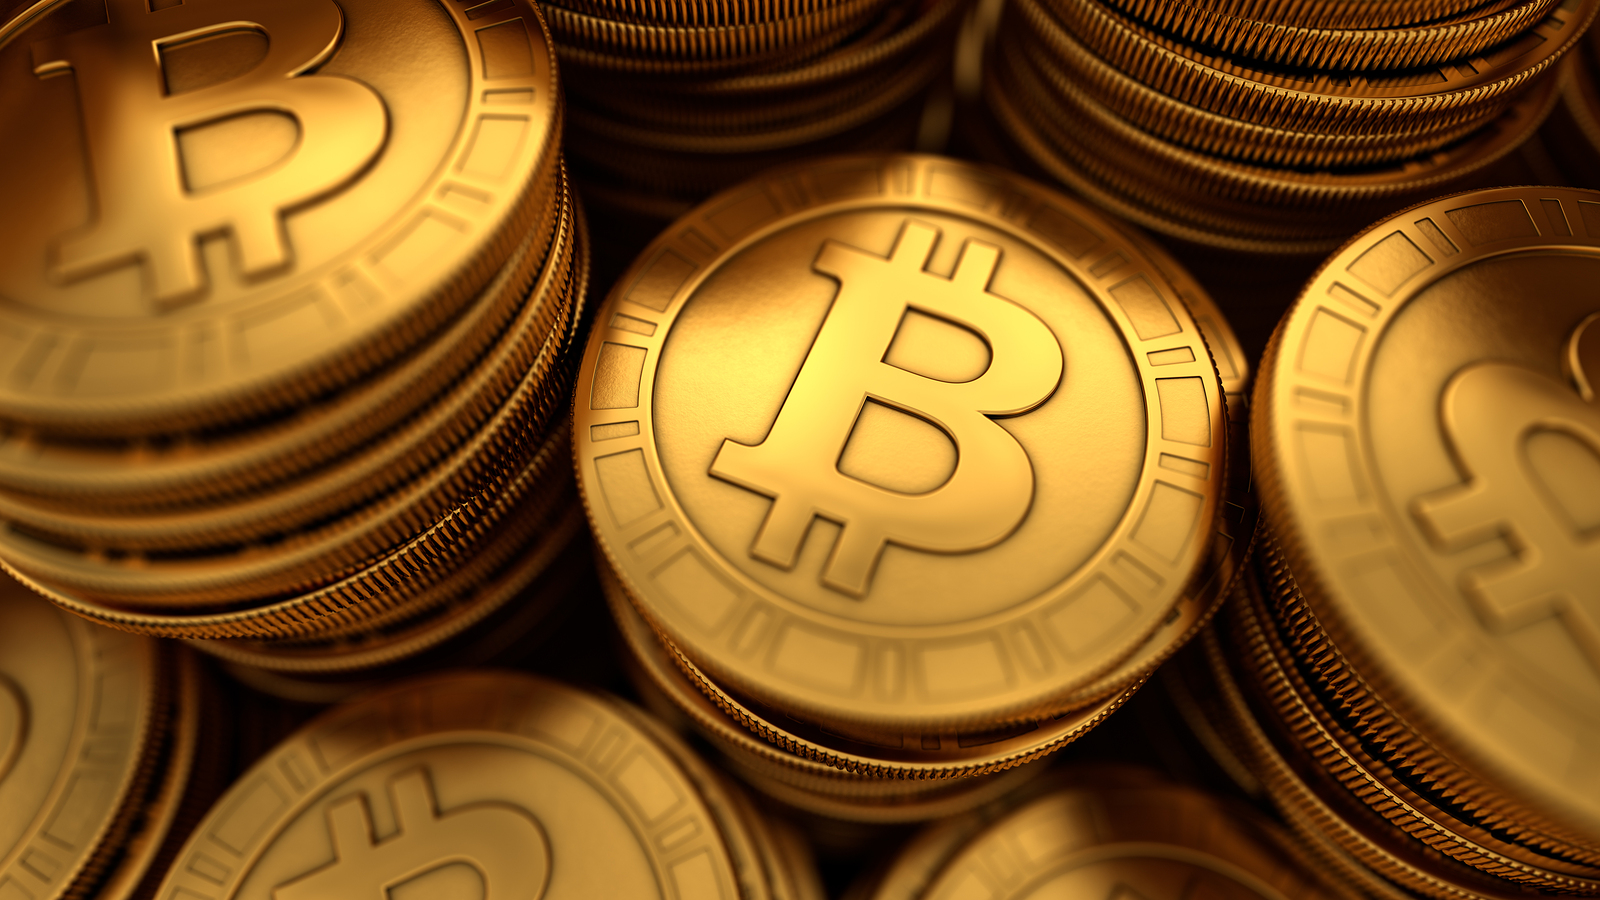 Bitcoin Computer Internet Money Coins Wallpaper 13 So Papel De Parede Gratis